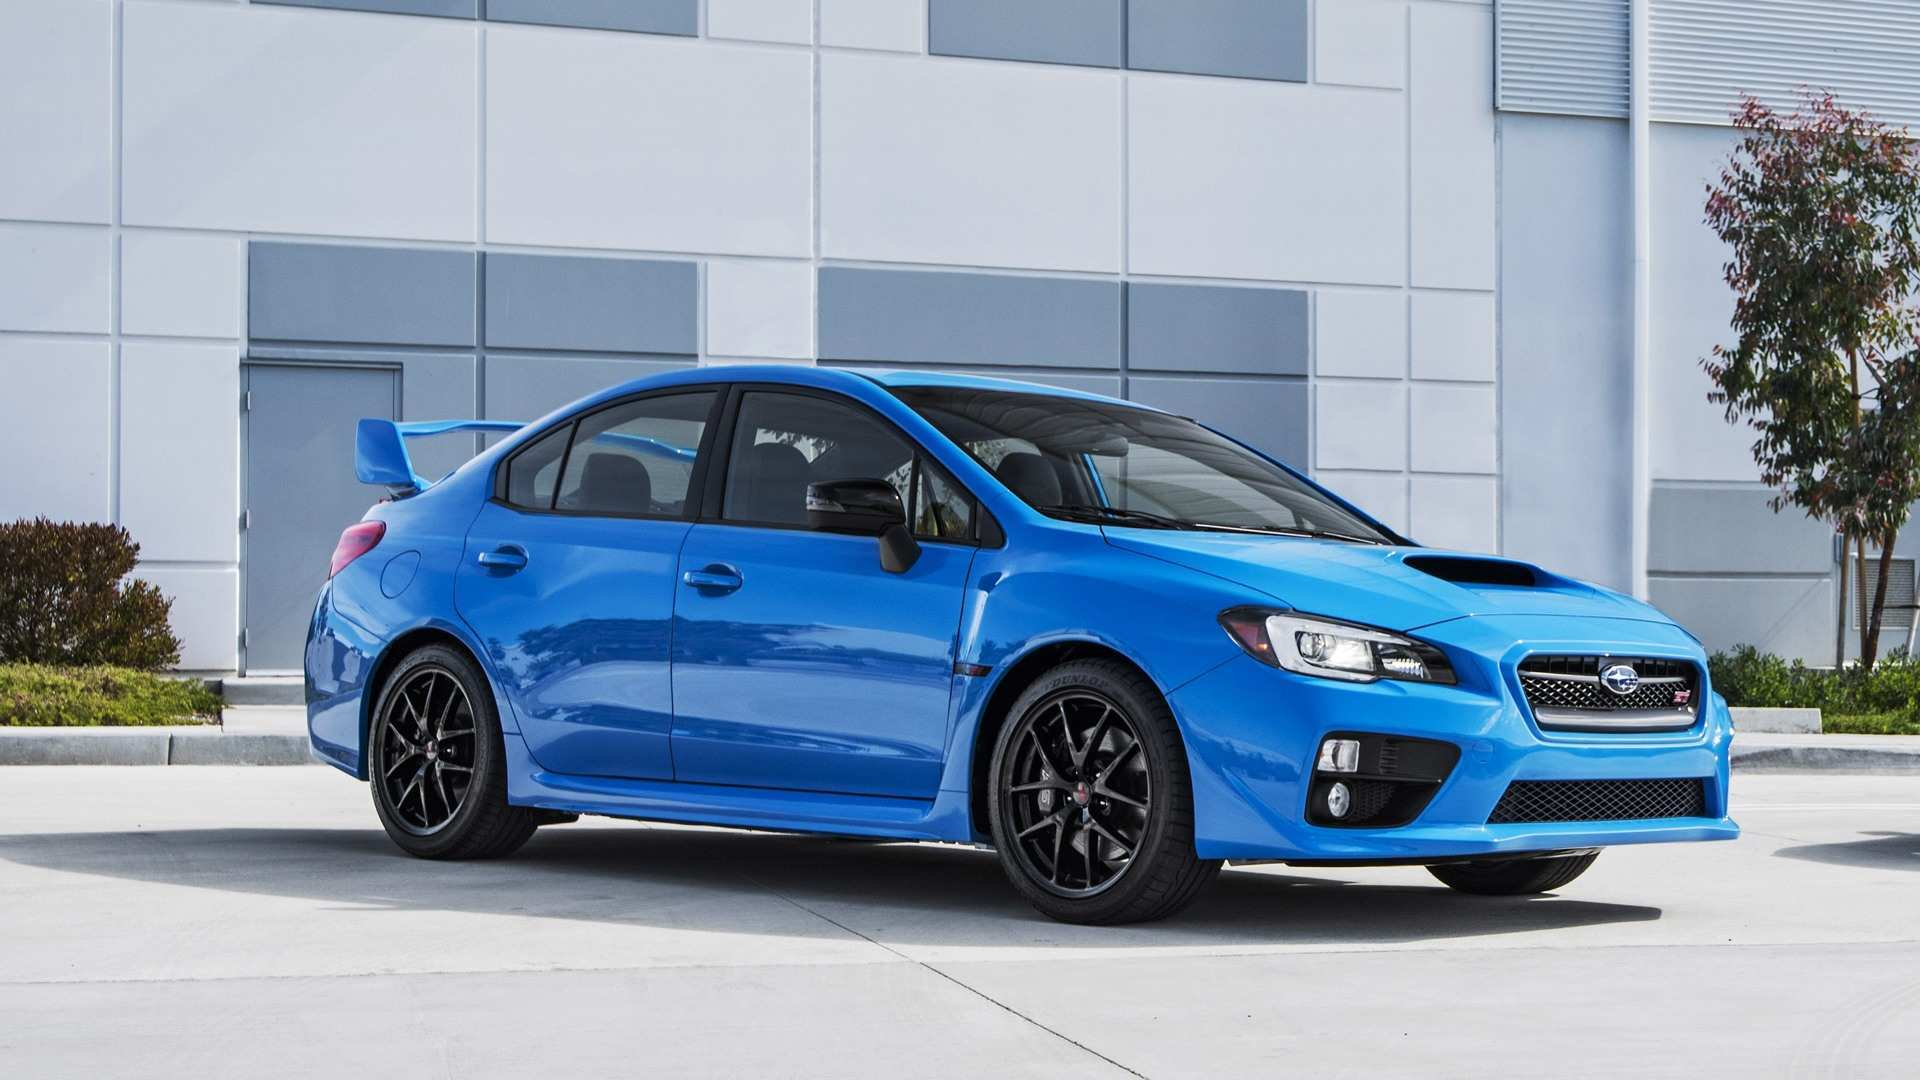 82 All New 2020 Wrx Sti Hyperblue Picture by 2020 Wrx Sti Hyperblue